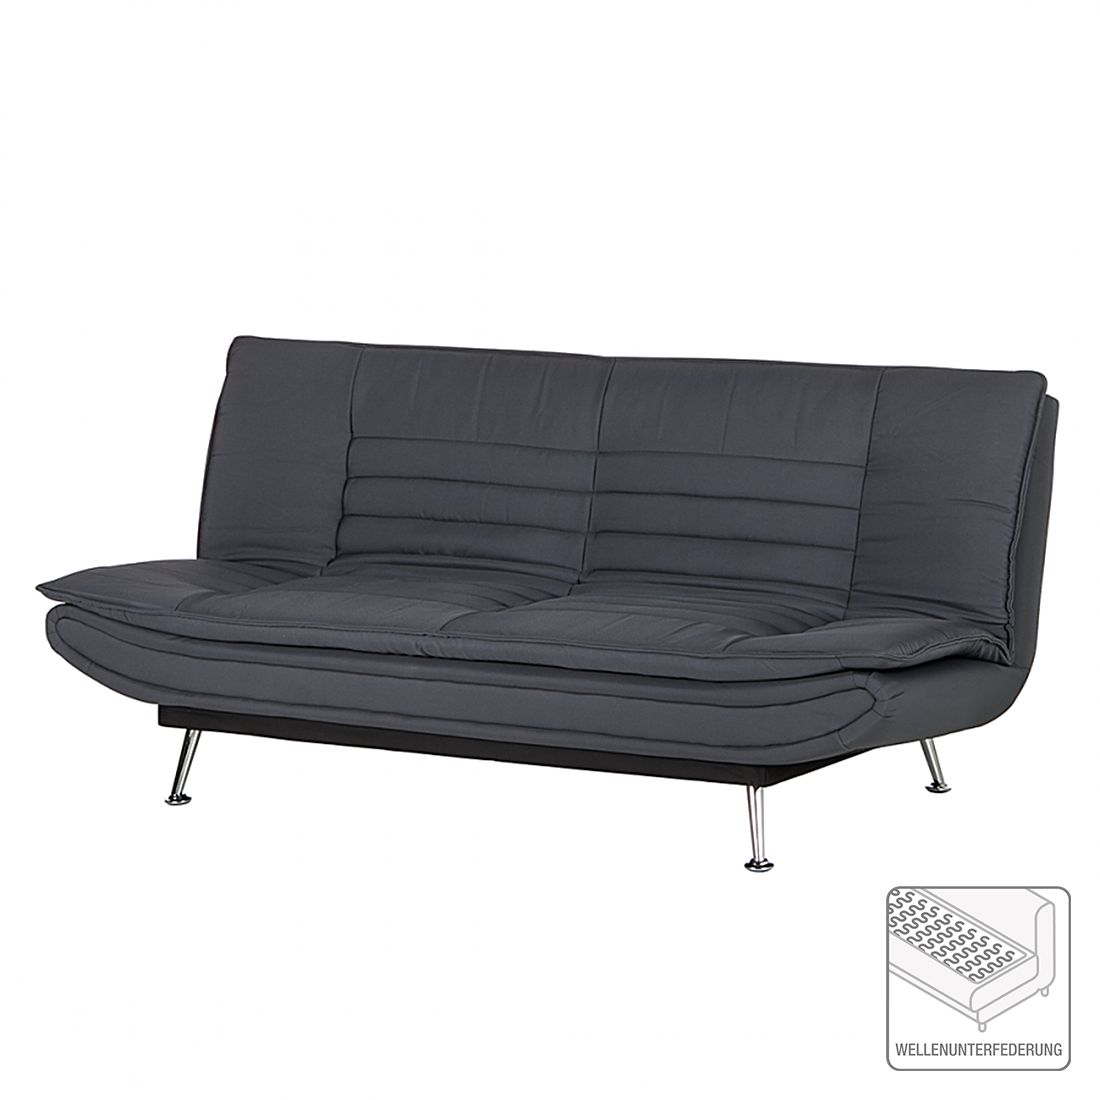 Design Schlafsofas Design Schlafsofas Sellyoo Mode Trends Und Lifestyle